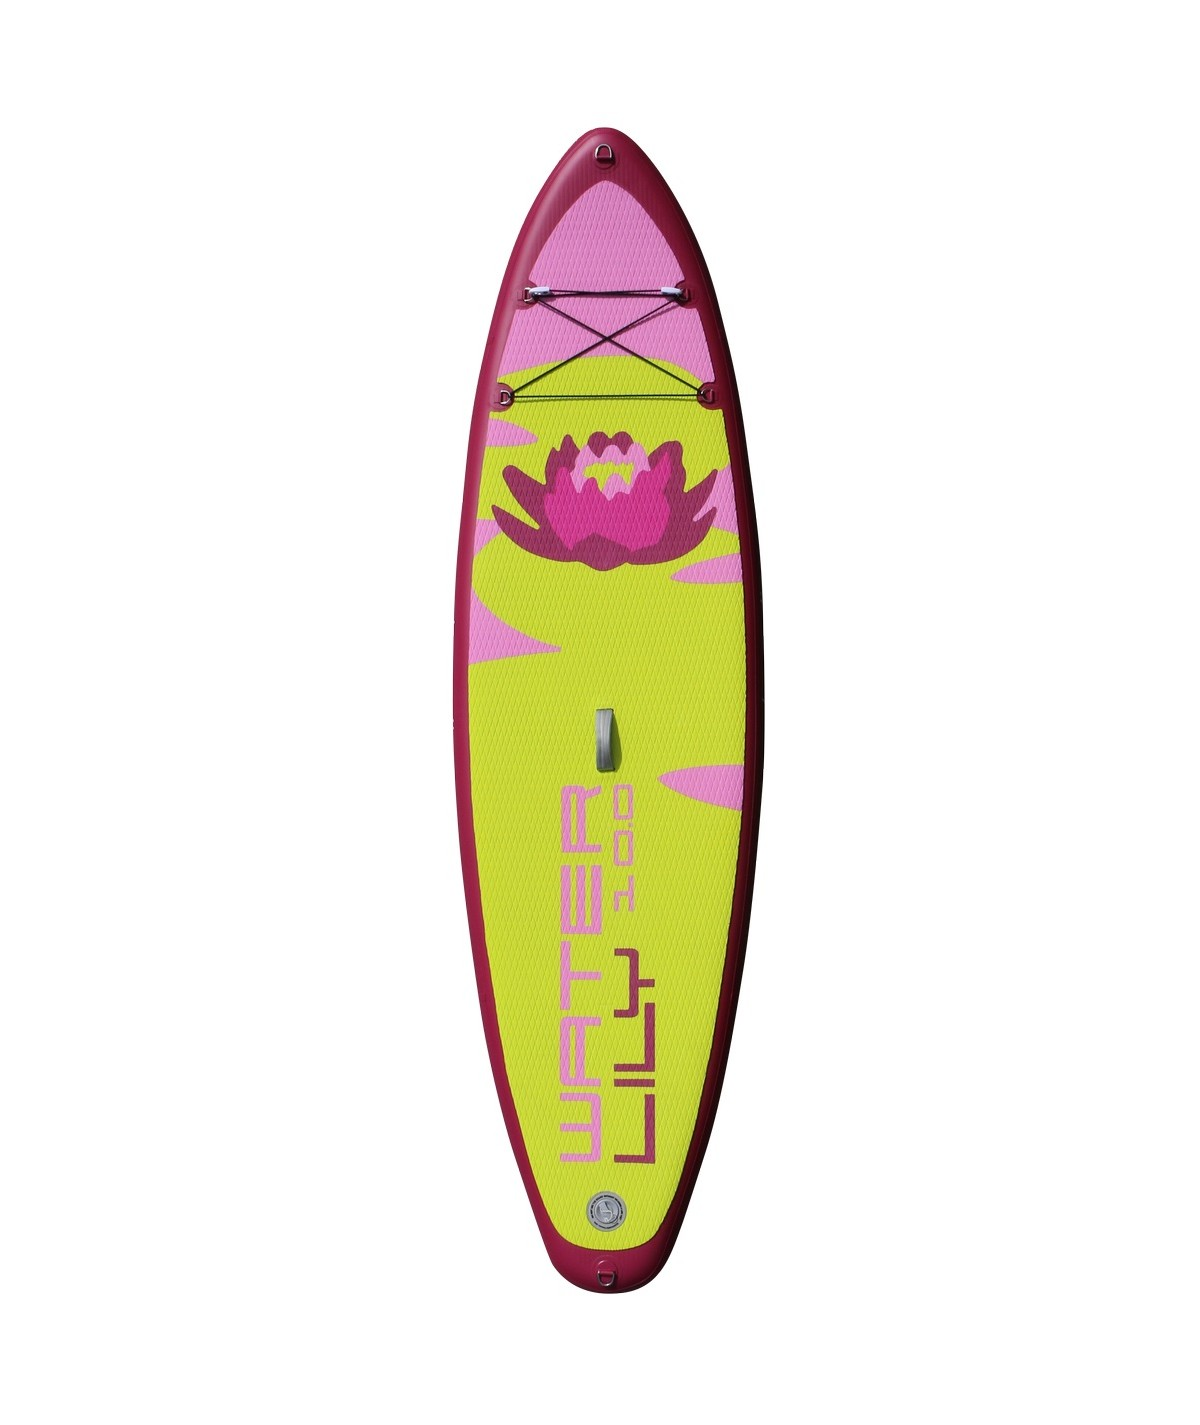 Stemax Waterlily 10'0 SUP